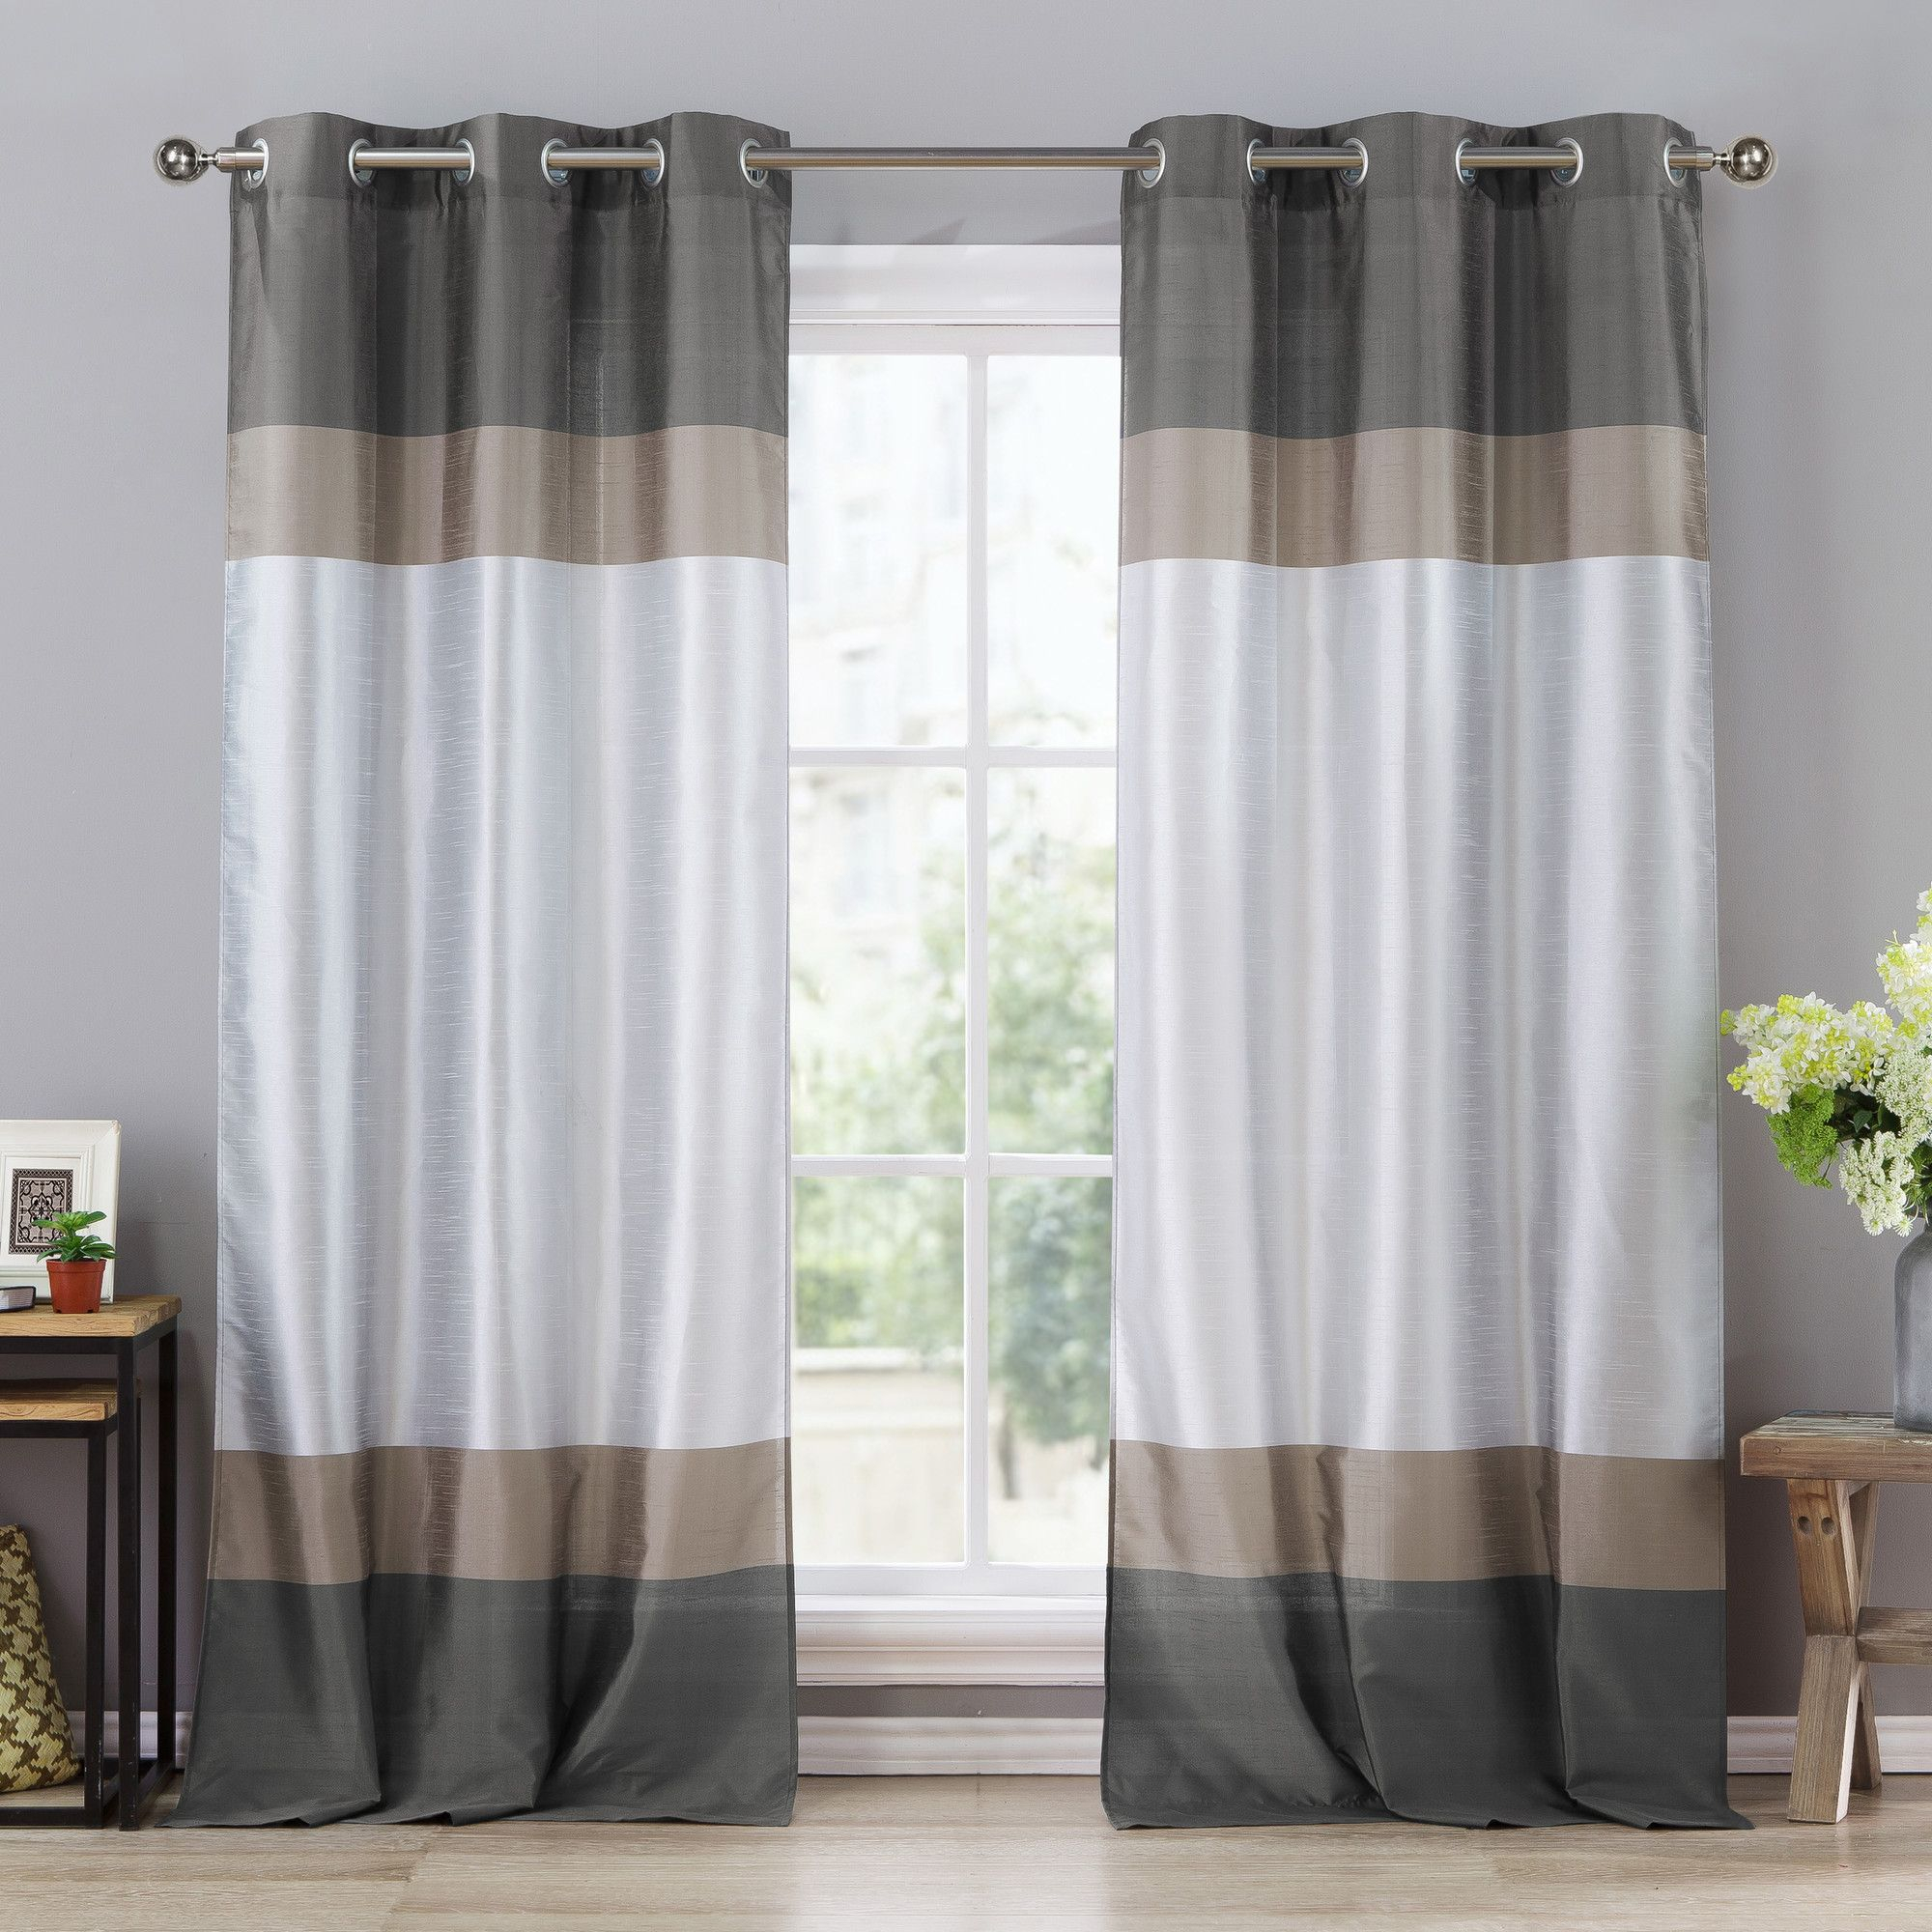 Everson Grommet Curtain Panel | Curtains | Pinterest With Chester Polyoni Pintuck Curtain Panels (View 1 of 20)